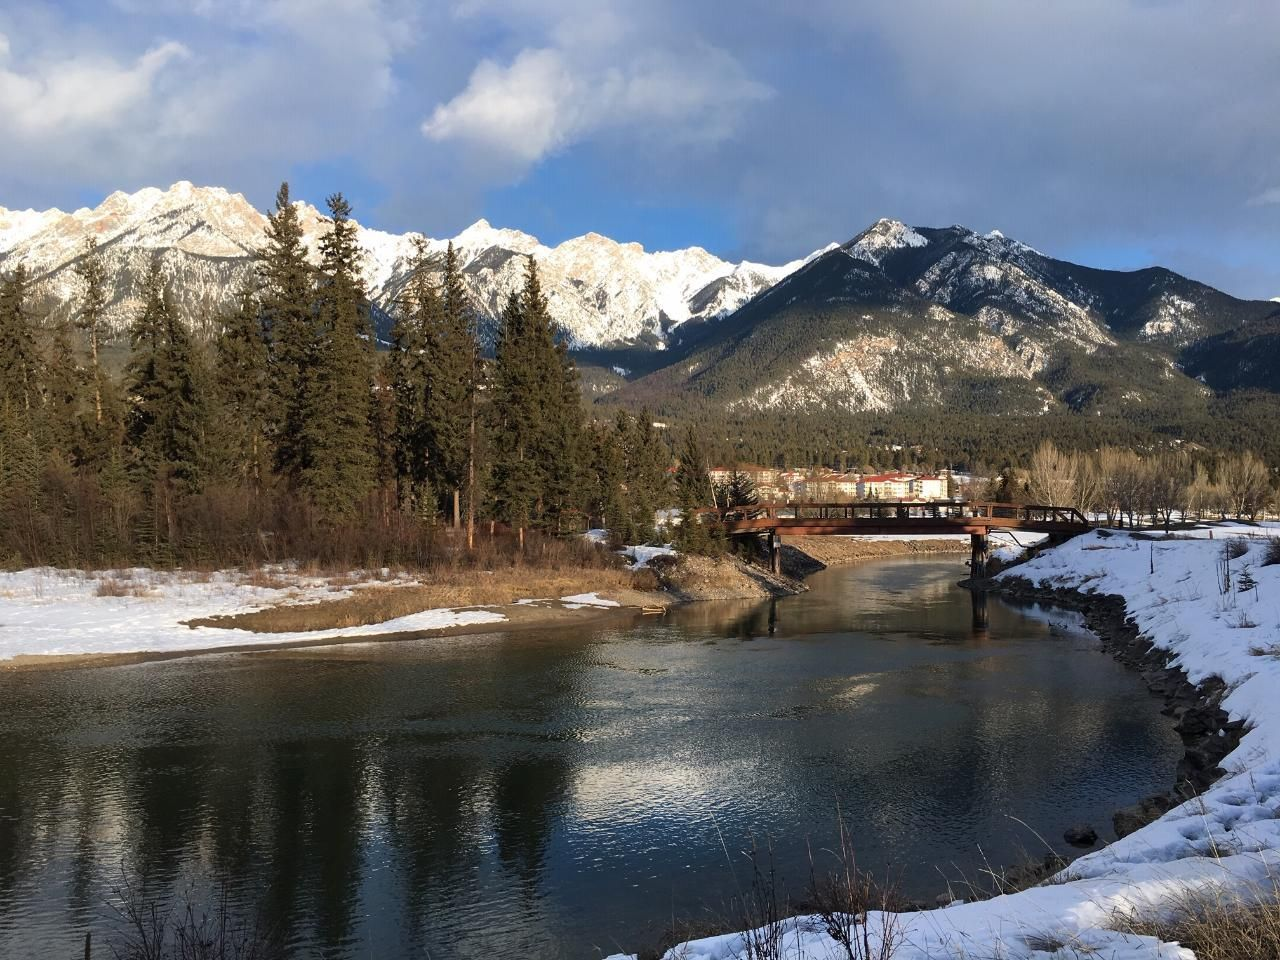 Main Photo: Lot 98 RIVERSIDE DRIVE in Fairmont Hot Springs: Vacant Land for sale : MLS®# 2460024